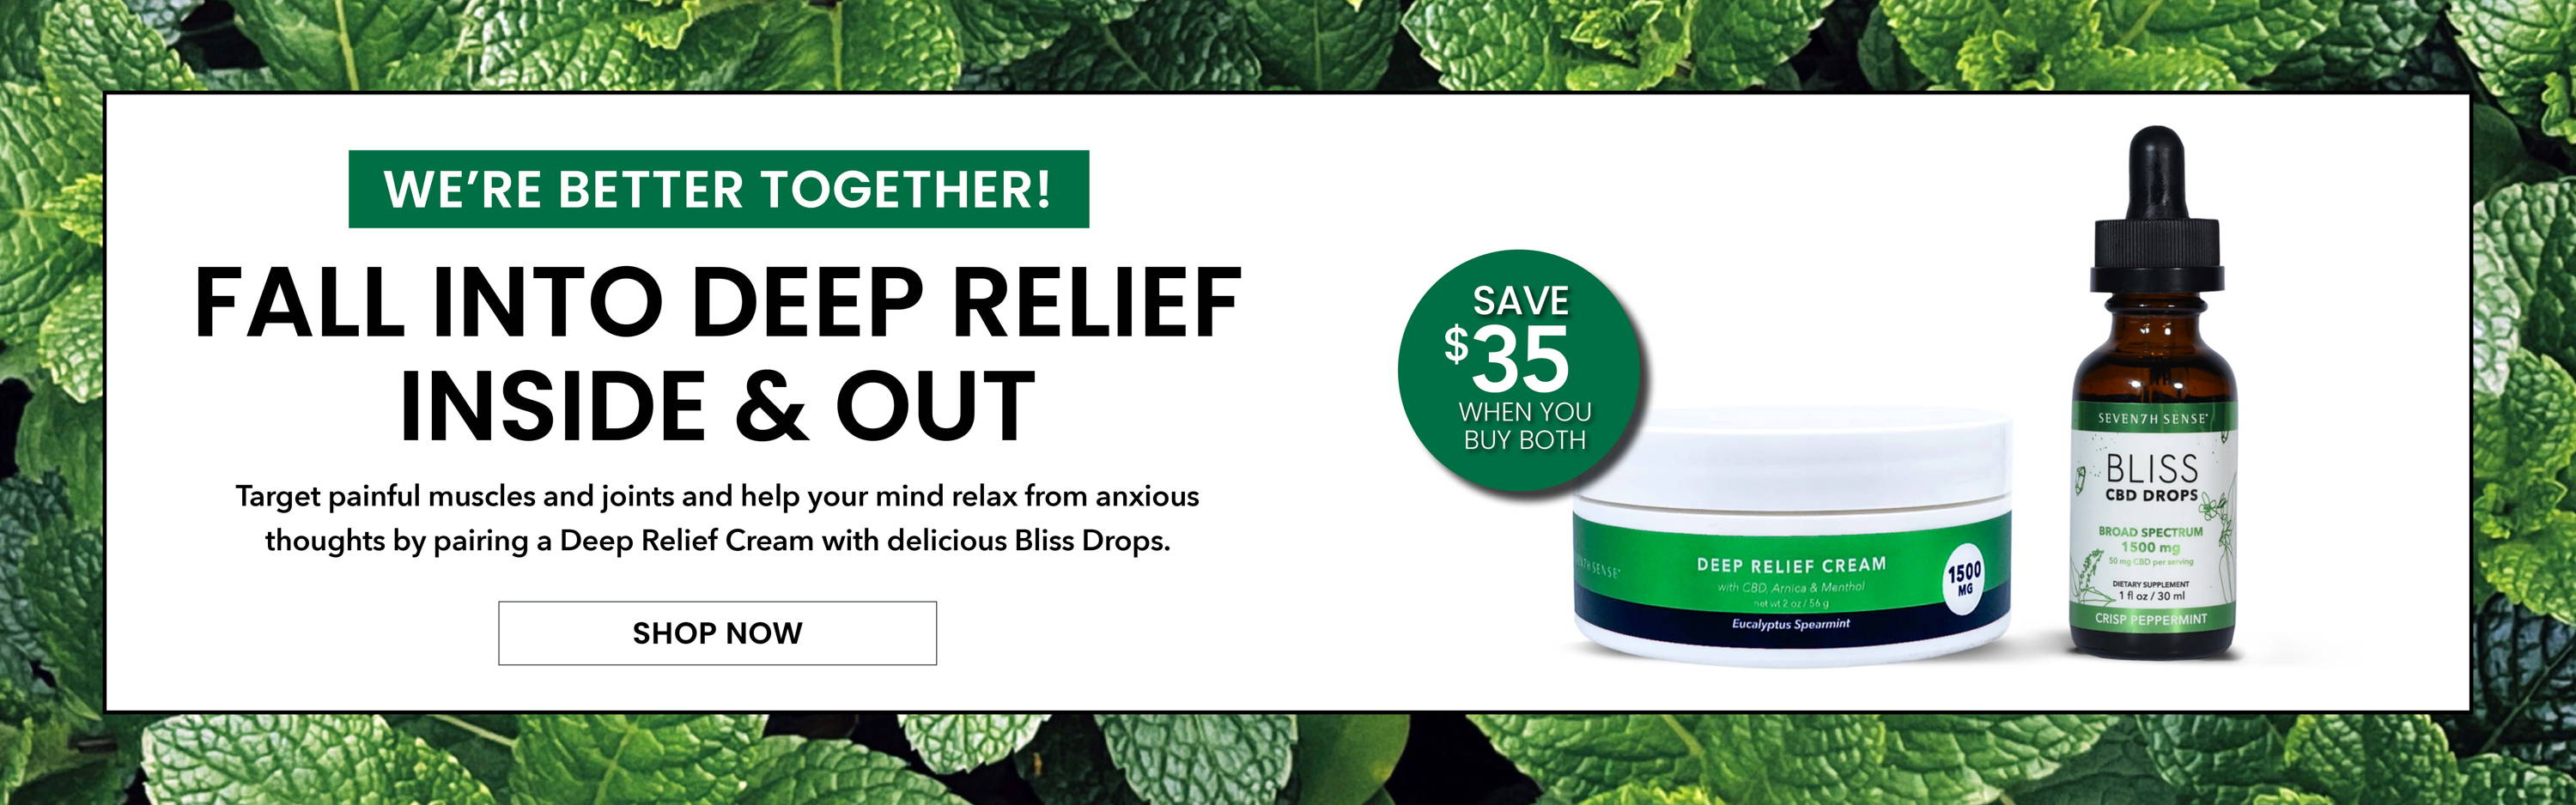 We're better together! Fall into deep relief inside and out.  Target painful muscles and joints and help your mind relax from anxious thoughts by pairing a Deep Relief Cream with delicious Bliss Drops. Shop Now.